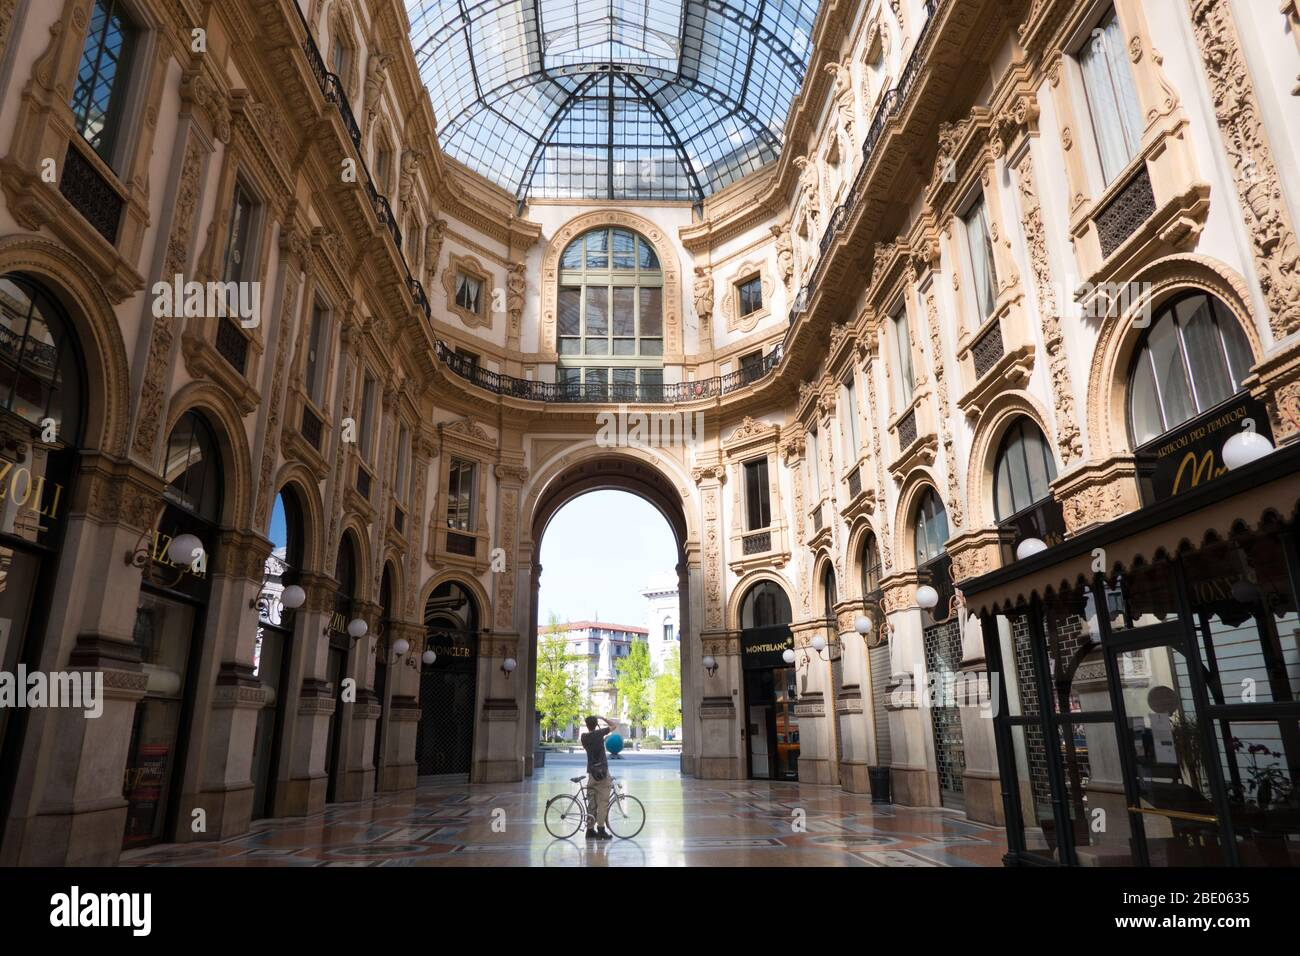 Deserted Galleria Vittorio Emanuele II in Milan, Italy during COVID-19 epidemic with man on bike taking picture. Daily life in Milano with coronavirus Stock Photo